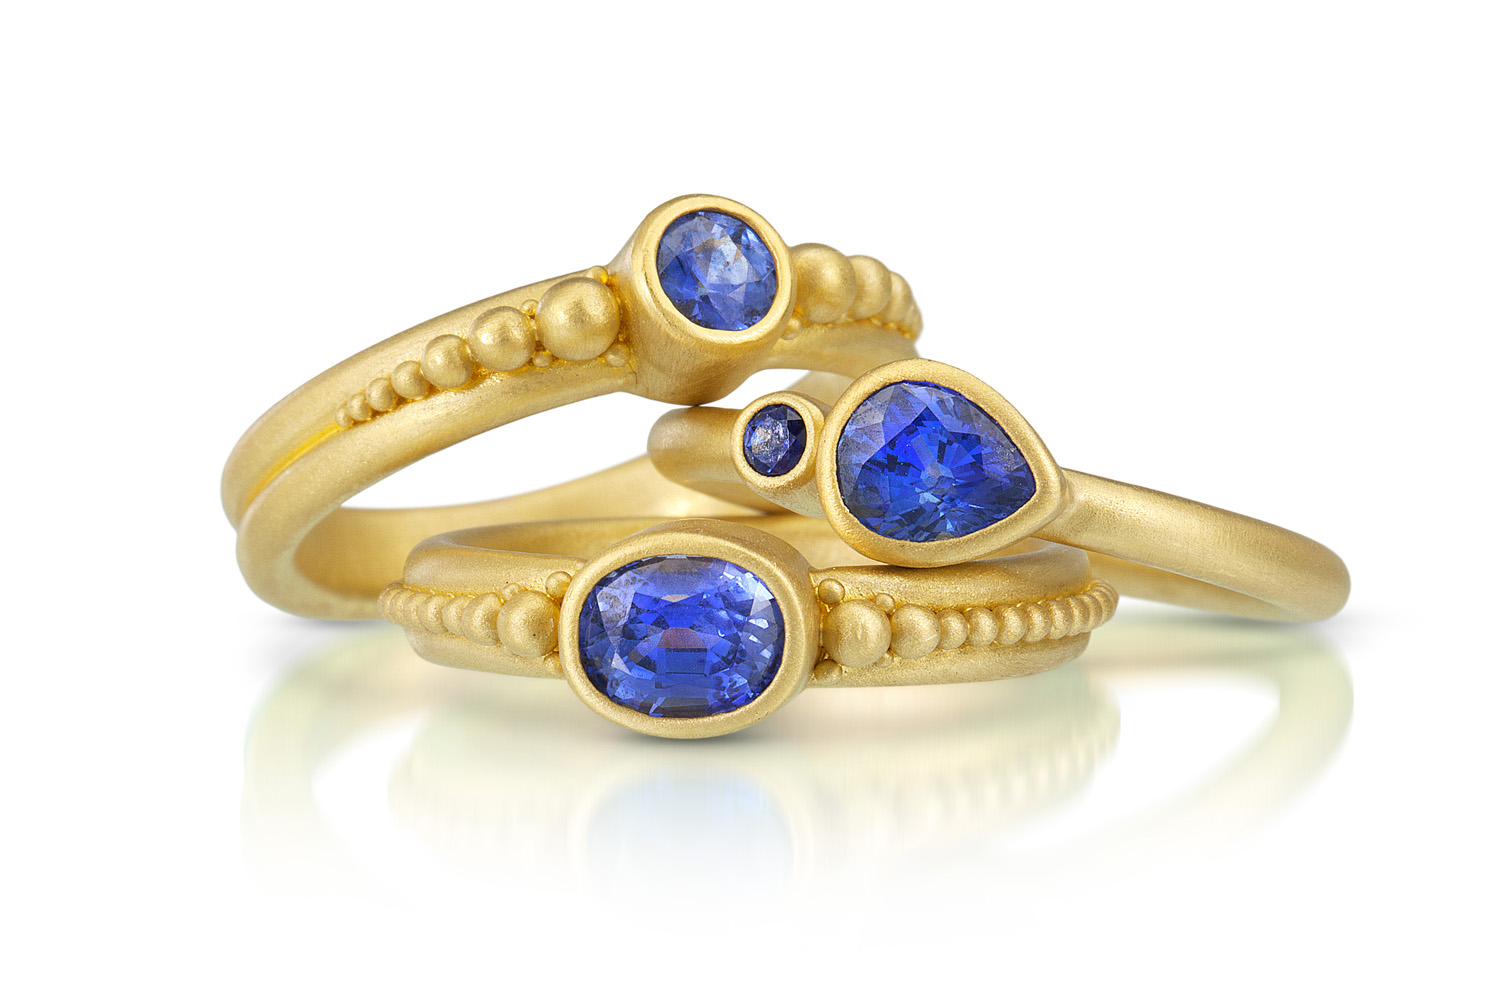 low amazon men neelam in sapphire prongs clara prices certified dp silver india jewellery blue store women or ring for rings at buy online